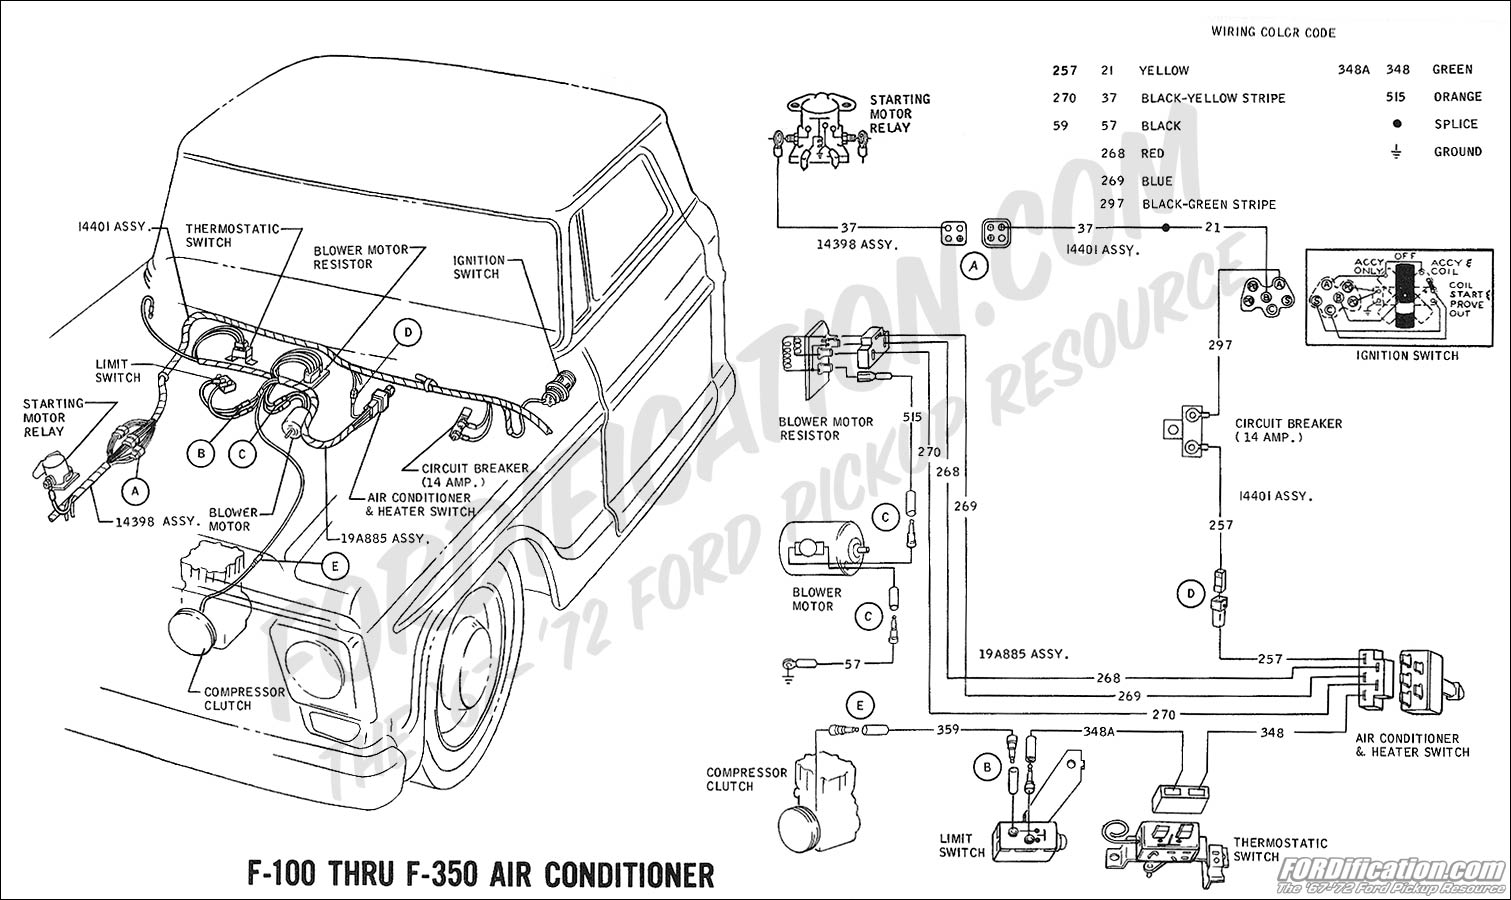 89 Toyota Pickup 4x4 Wiring Diagram Library Chevy 1989 Ford Ranger Ac Just Data Diagrams Color Code 1988